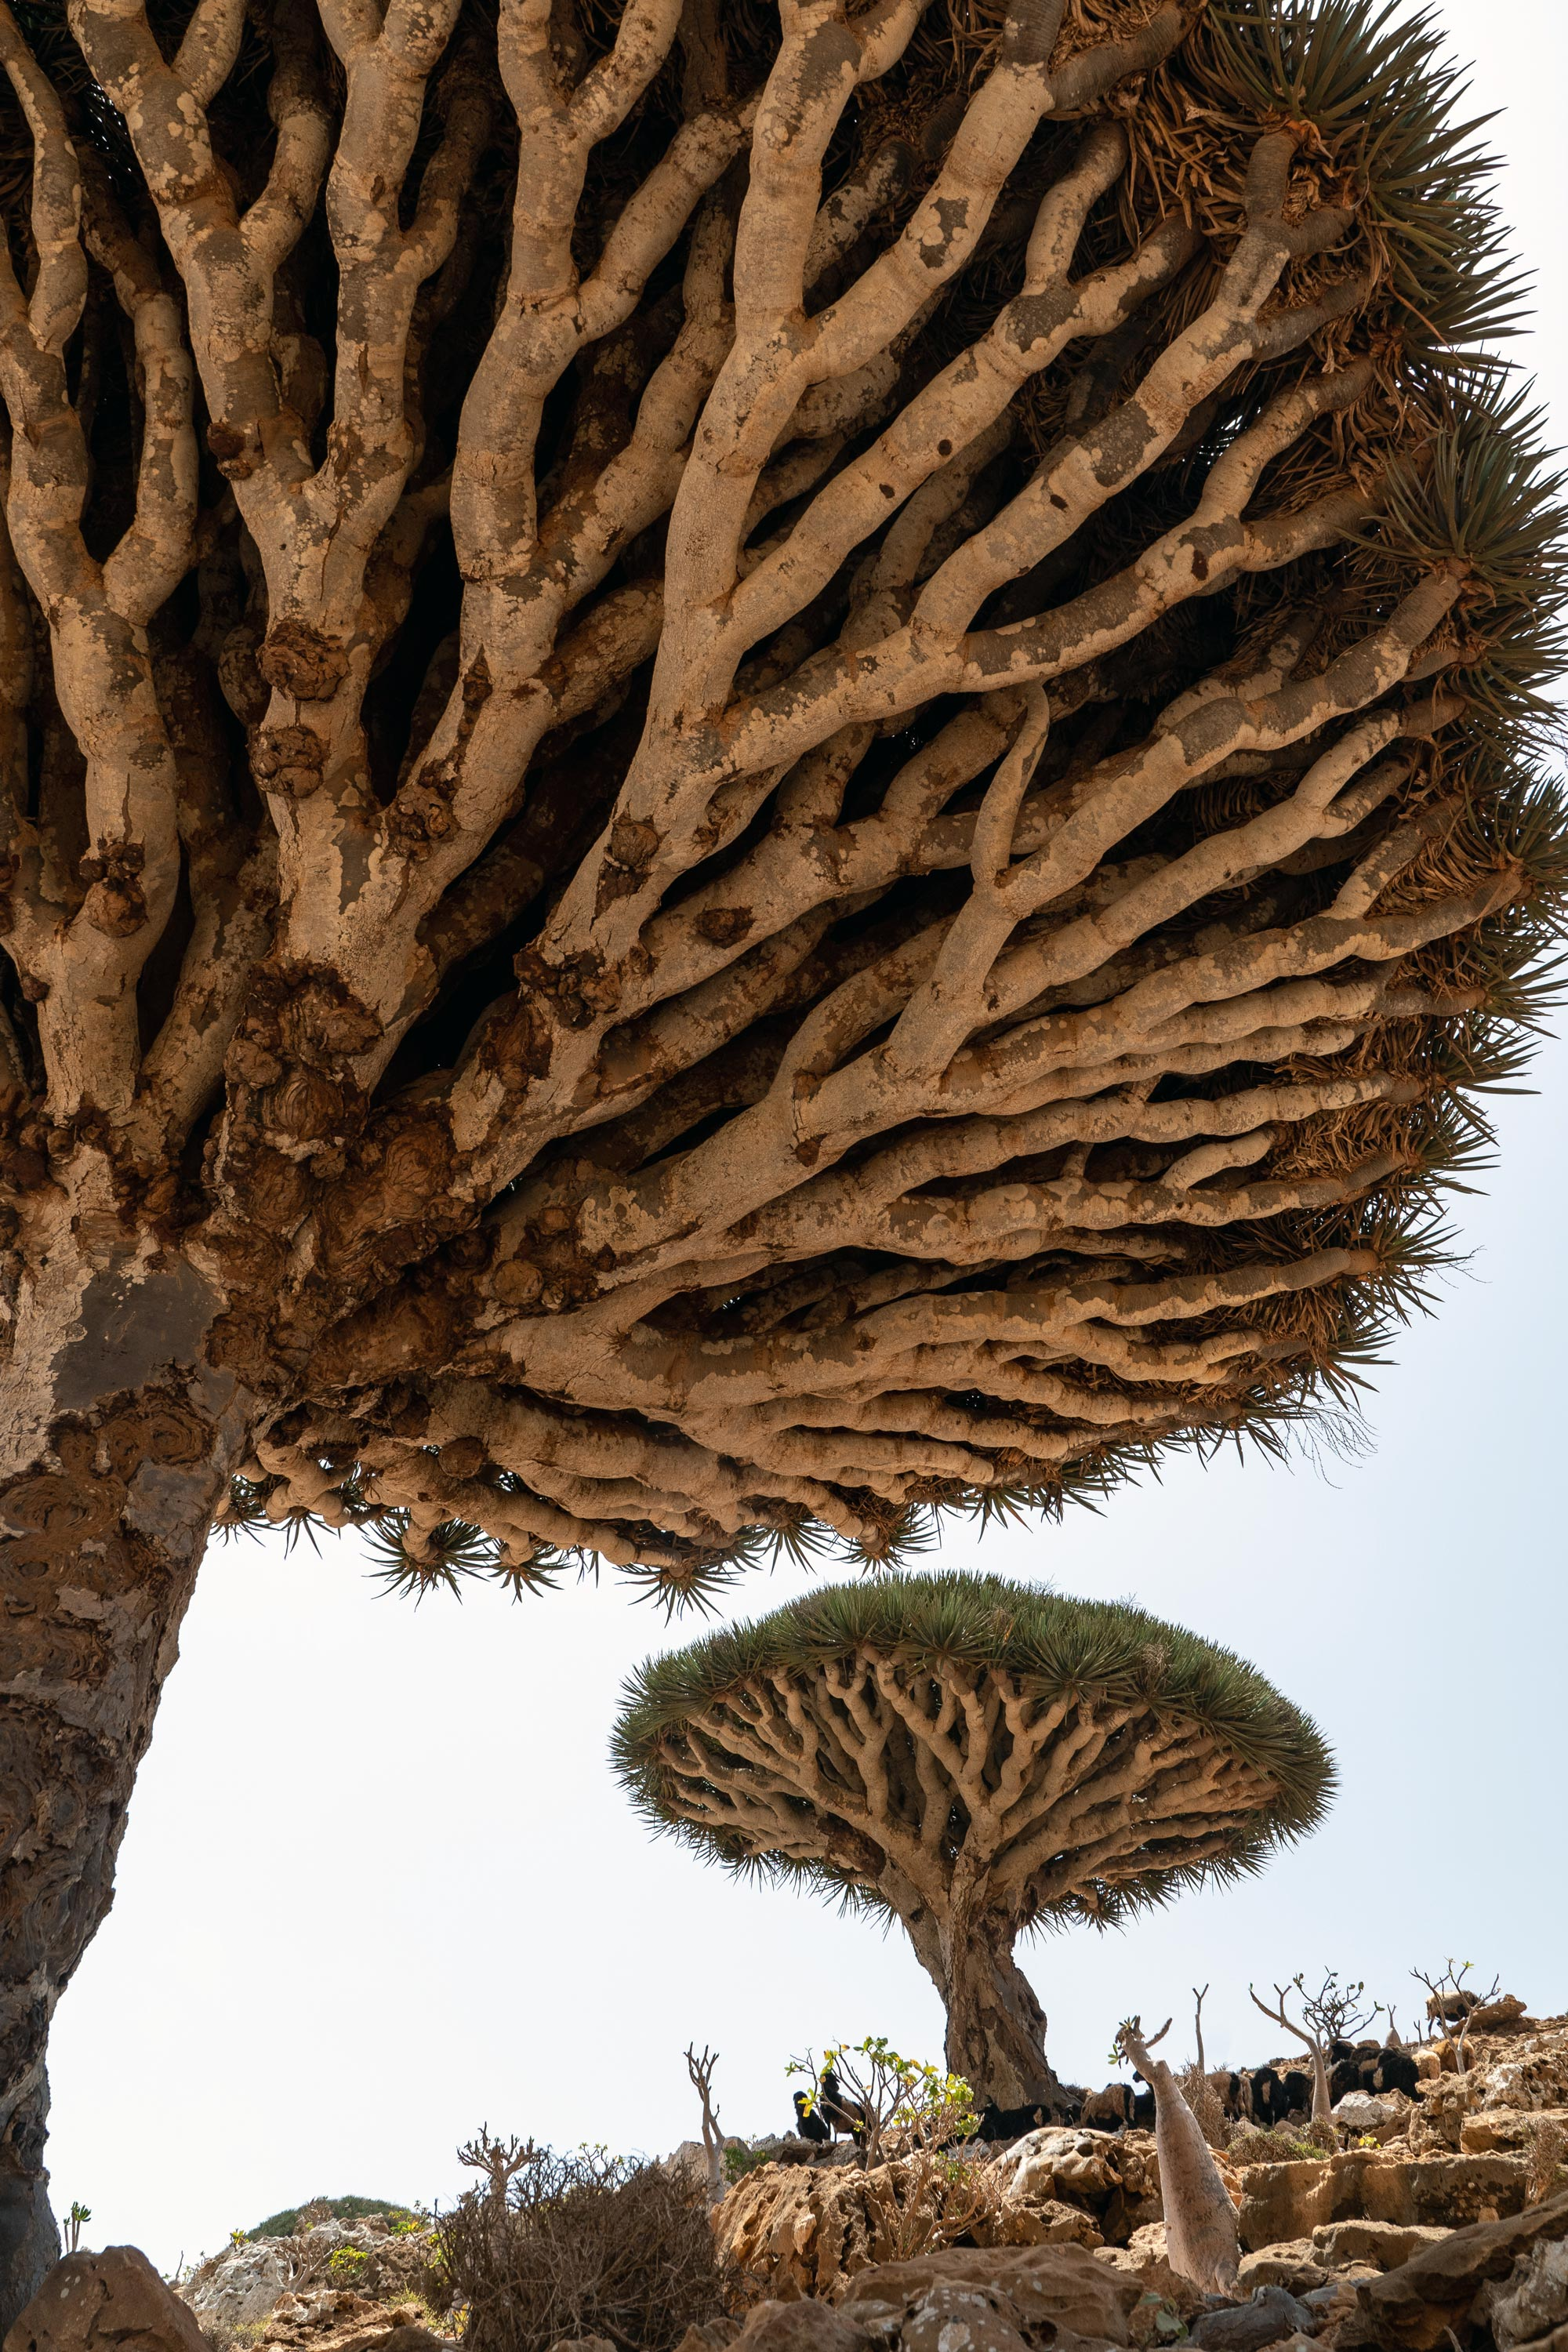 An up-close view of the branches of a Dragons Blood Tree. Goats graze beneath them, as the trees provide shade, and curious looking bottle trees with their small sprouts of leaves and flowers lie just outside of their shadow.